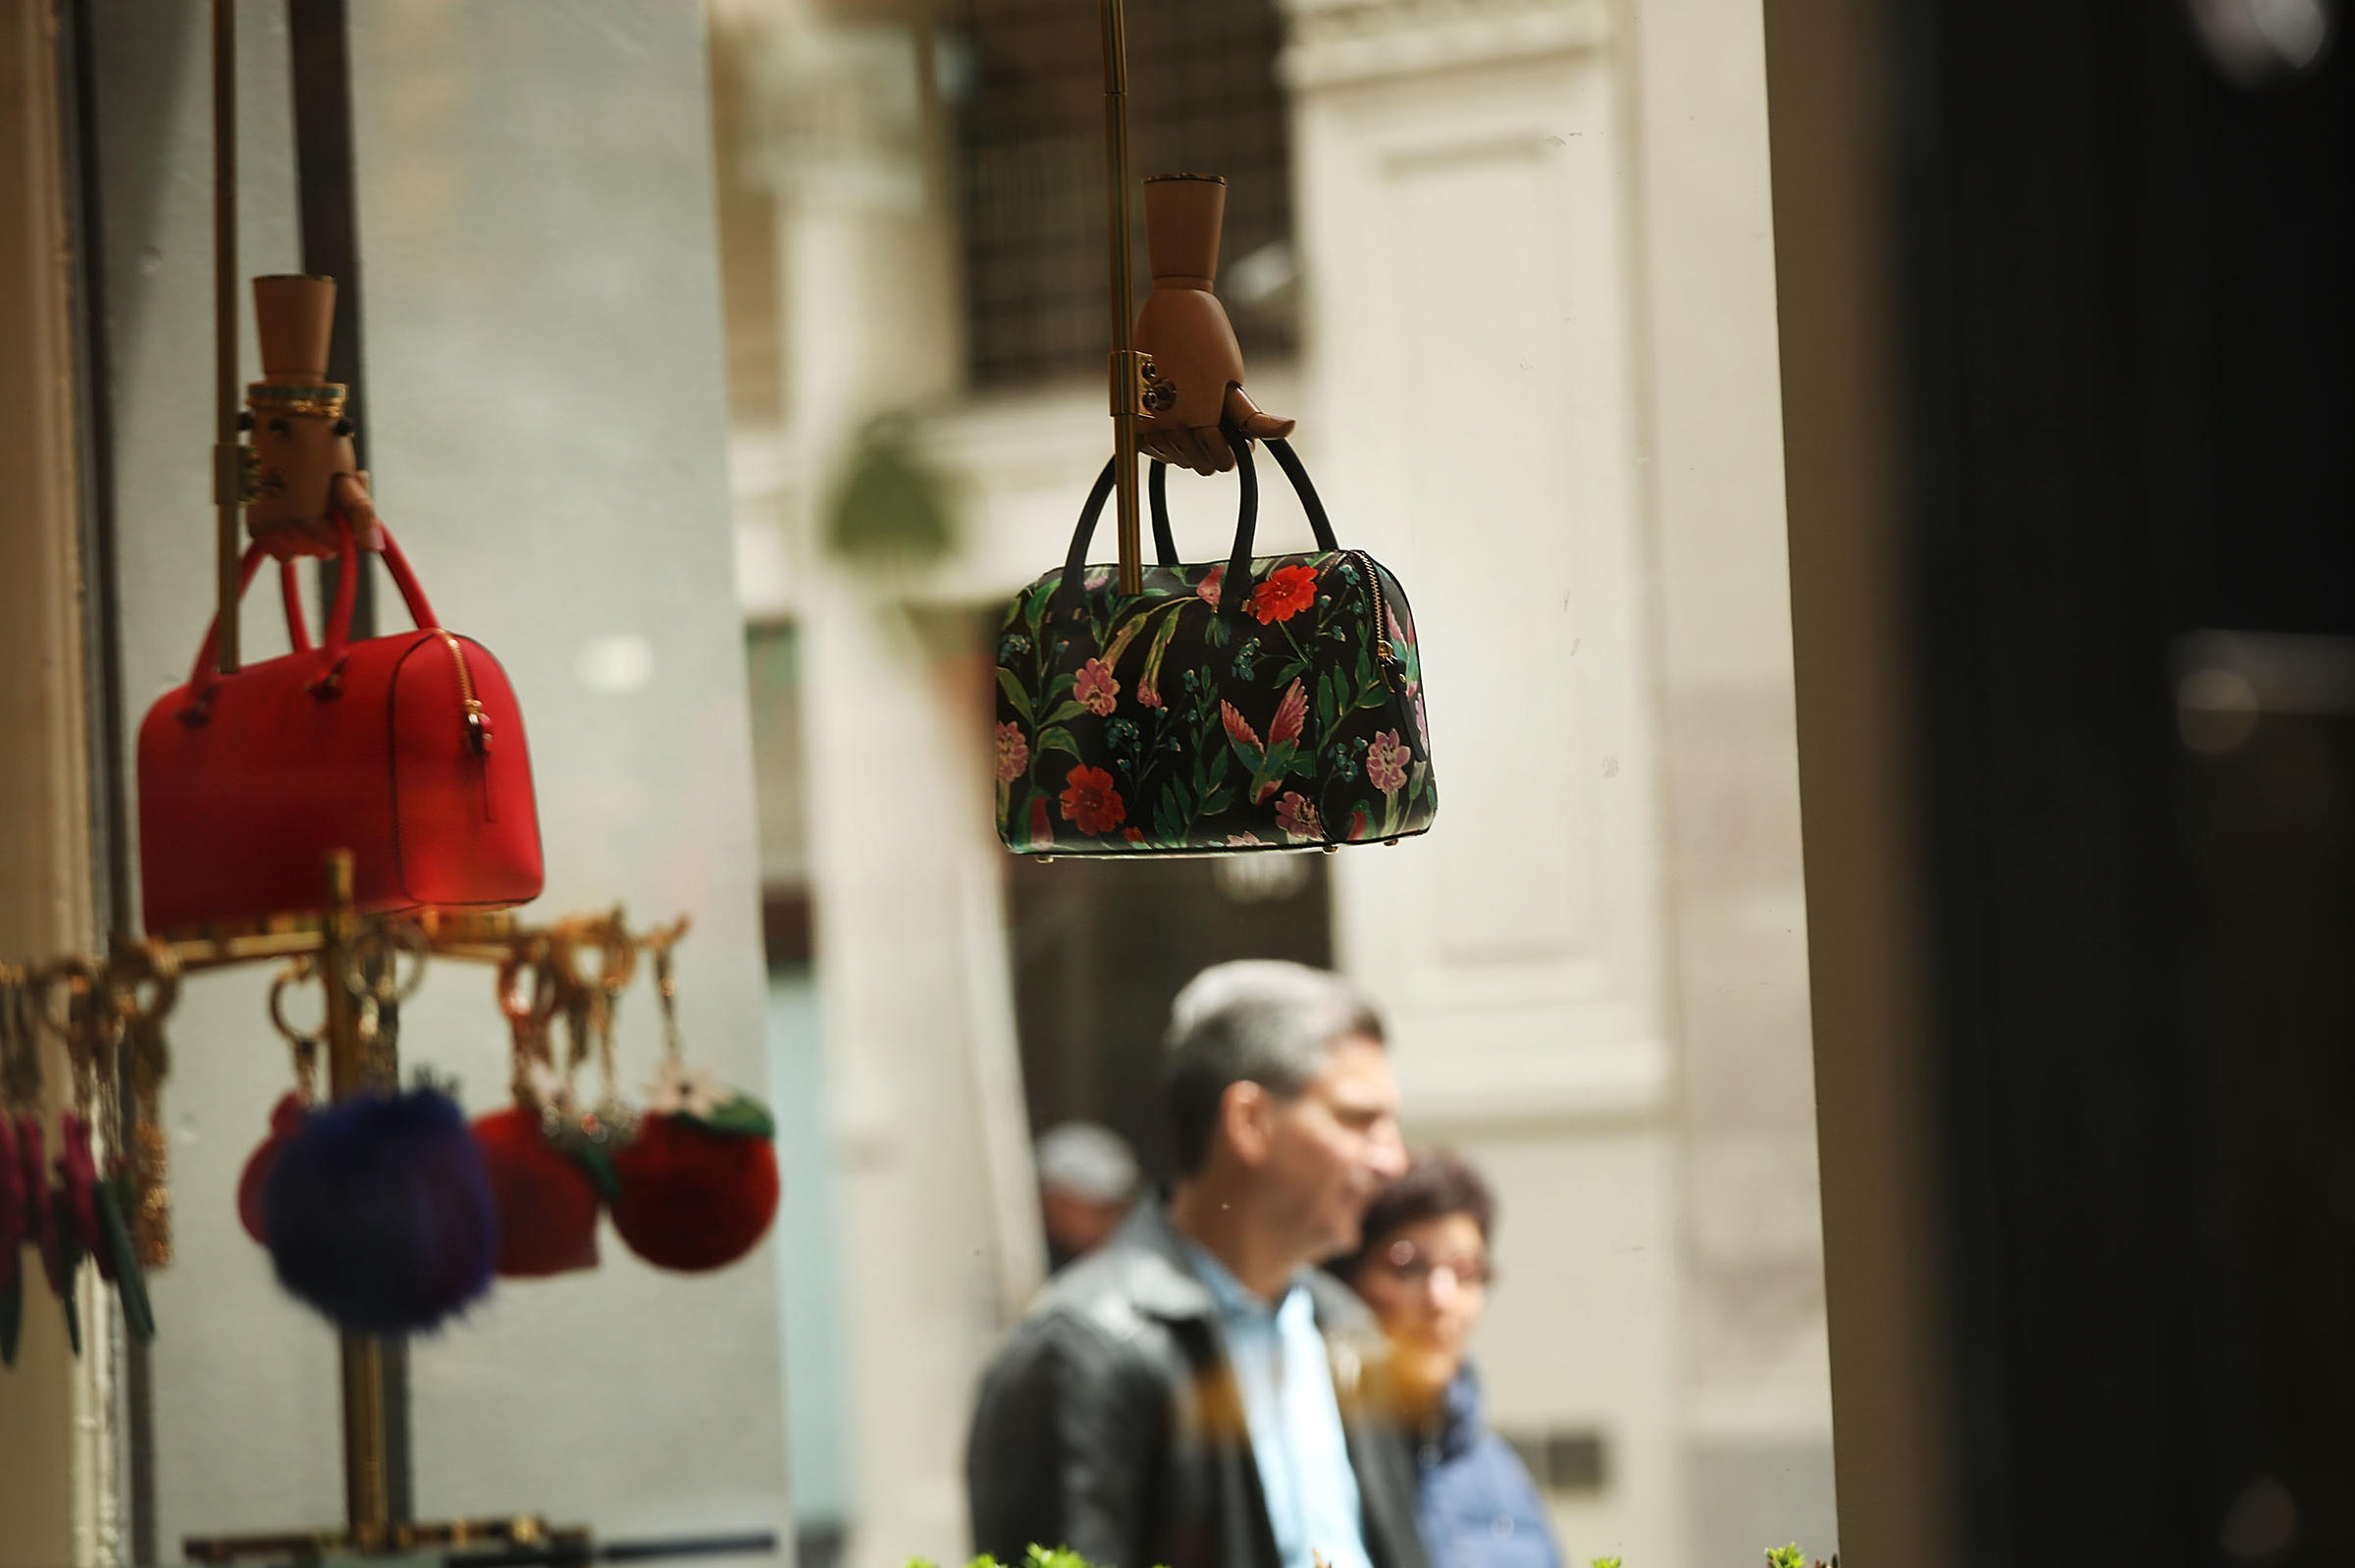 Coach Will Buy Kate Spade For $2.4 Billion To Bag Millennials